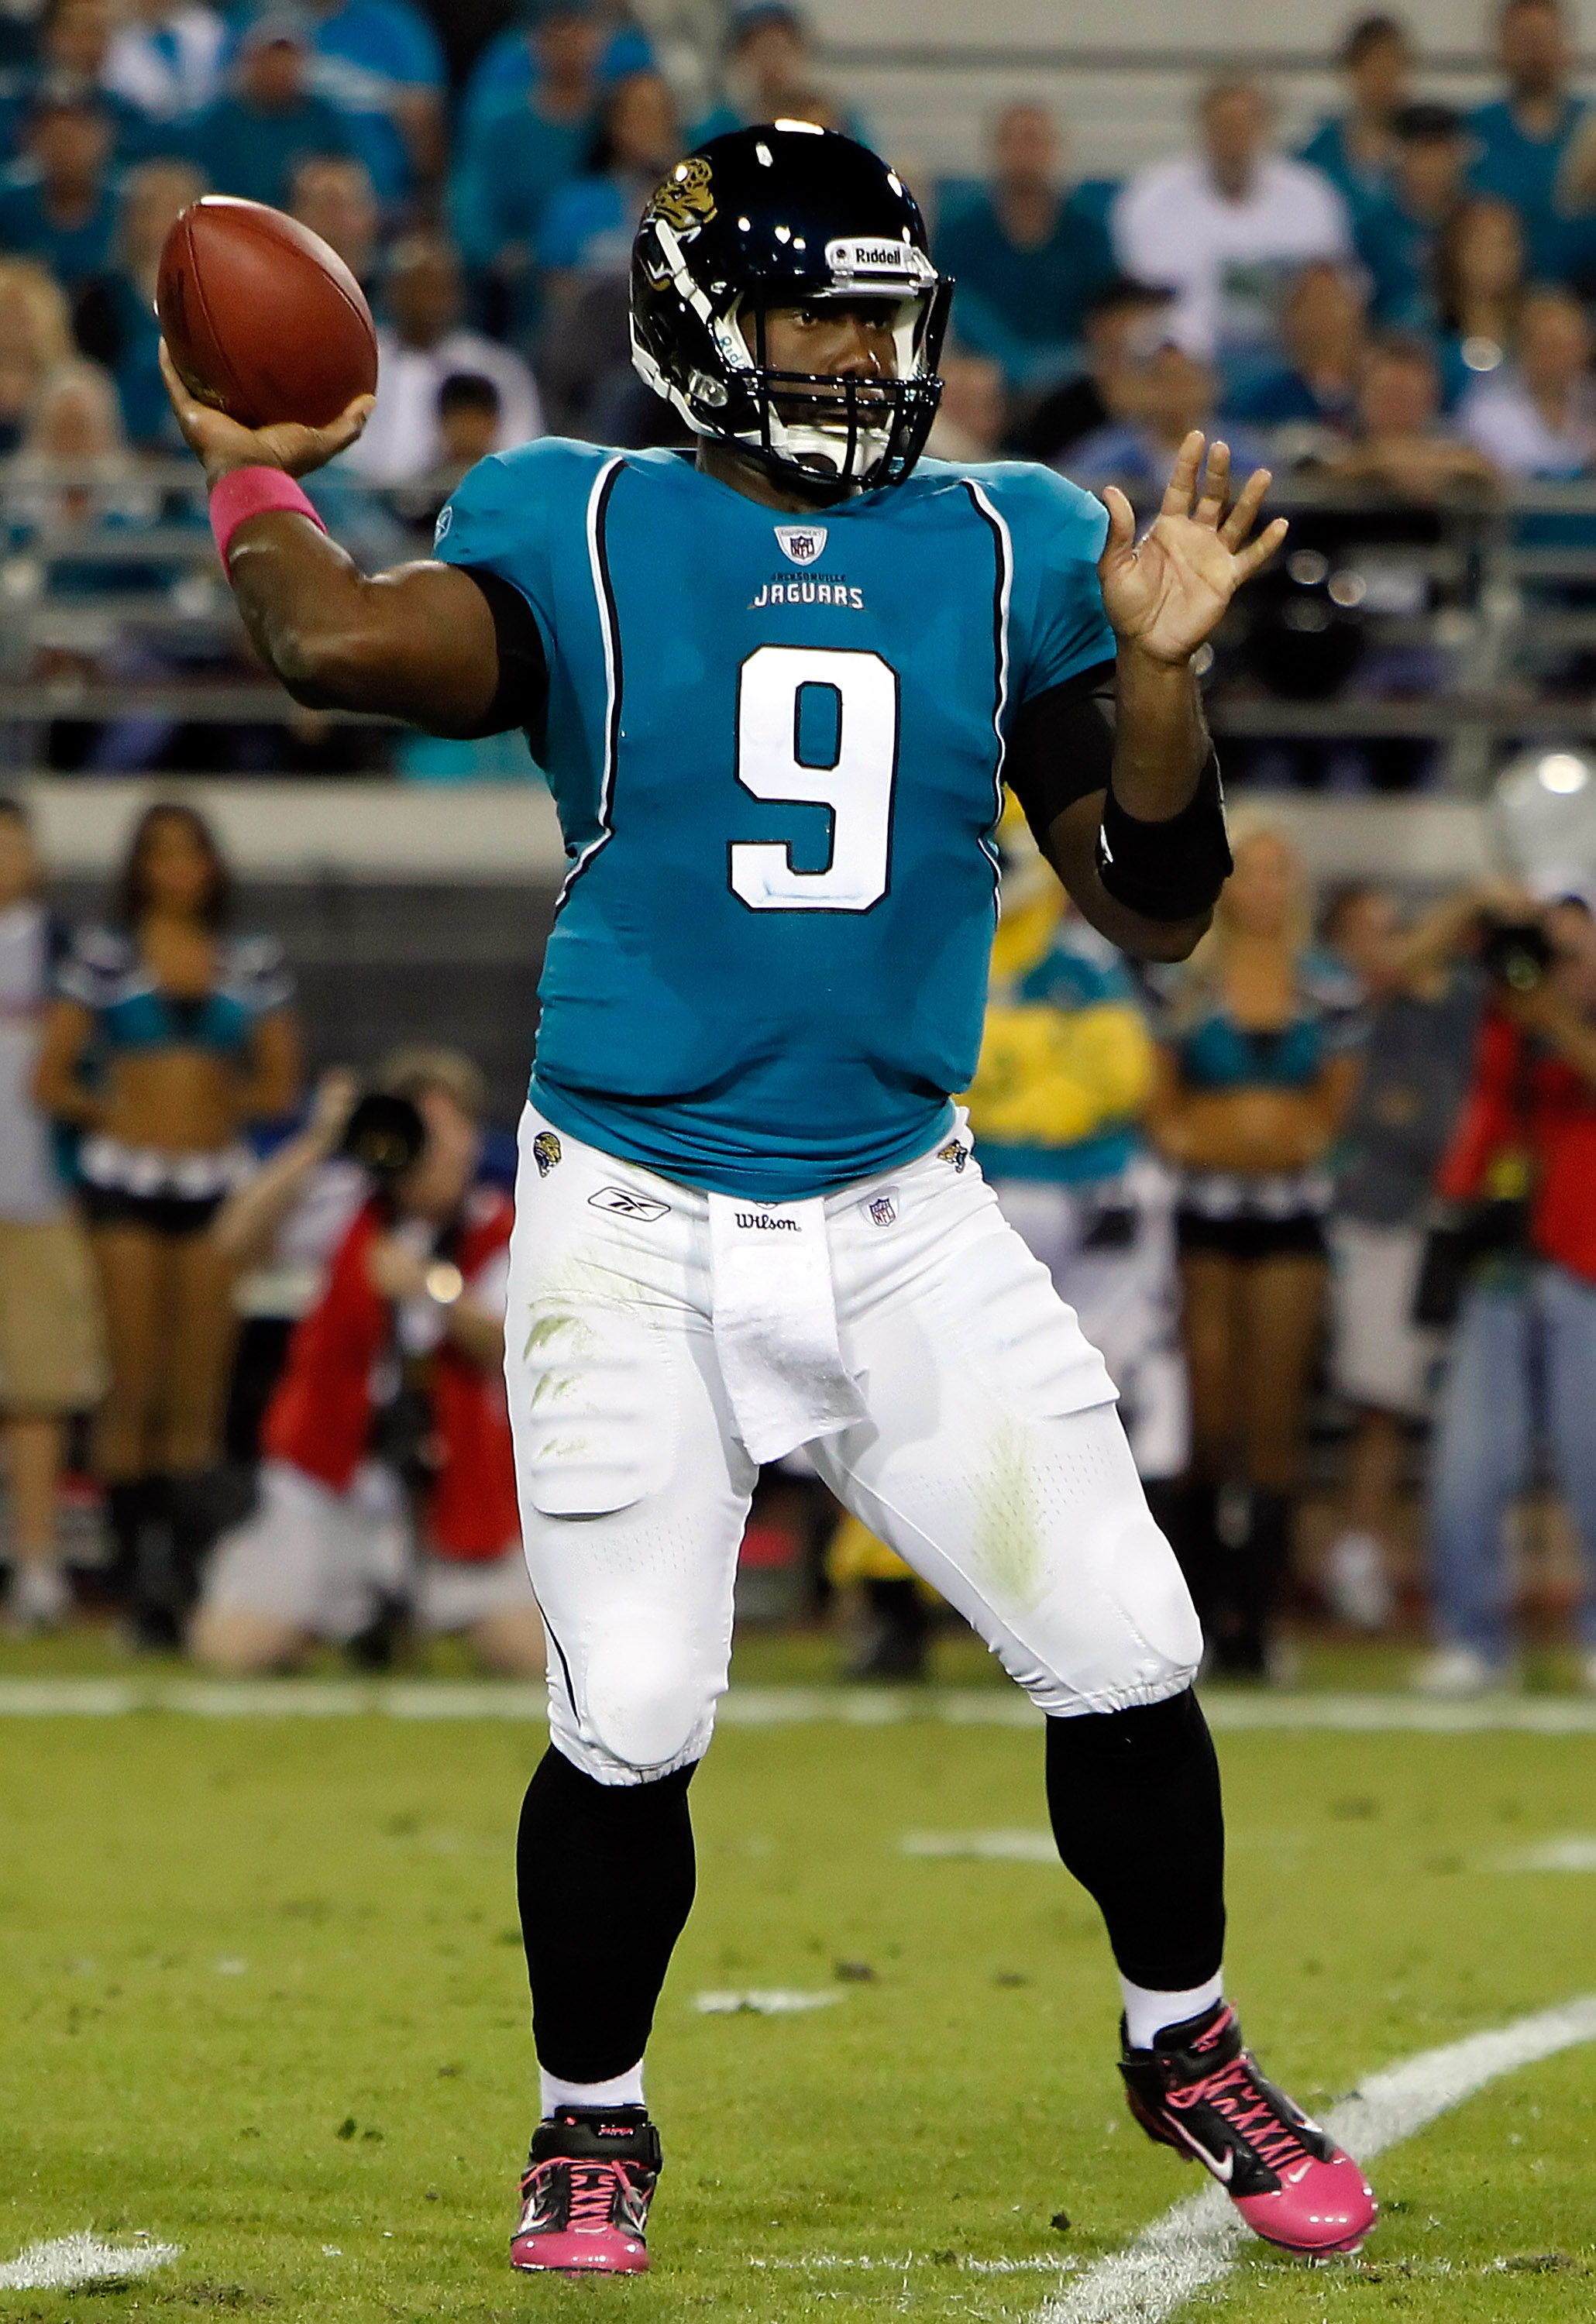 JACKSONVILLE, FL - OCTOBER 18:  Quarterback David Garrard #9 of the Jacksonville Jaguars throws a pass against the Tennessee Titans during the game at EverBank Field on October 18, 2010 in Jacksonville, Florida.  (Photo by J. Meric/Getty Images)